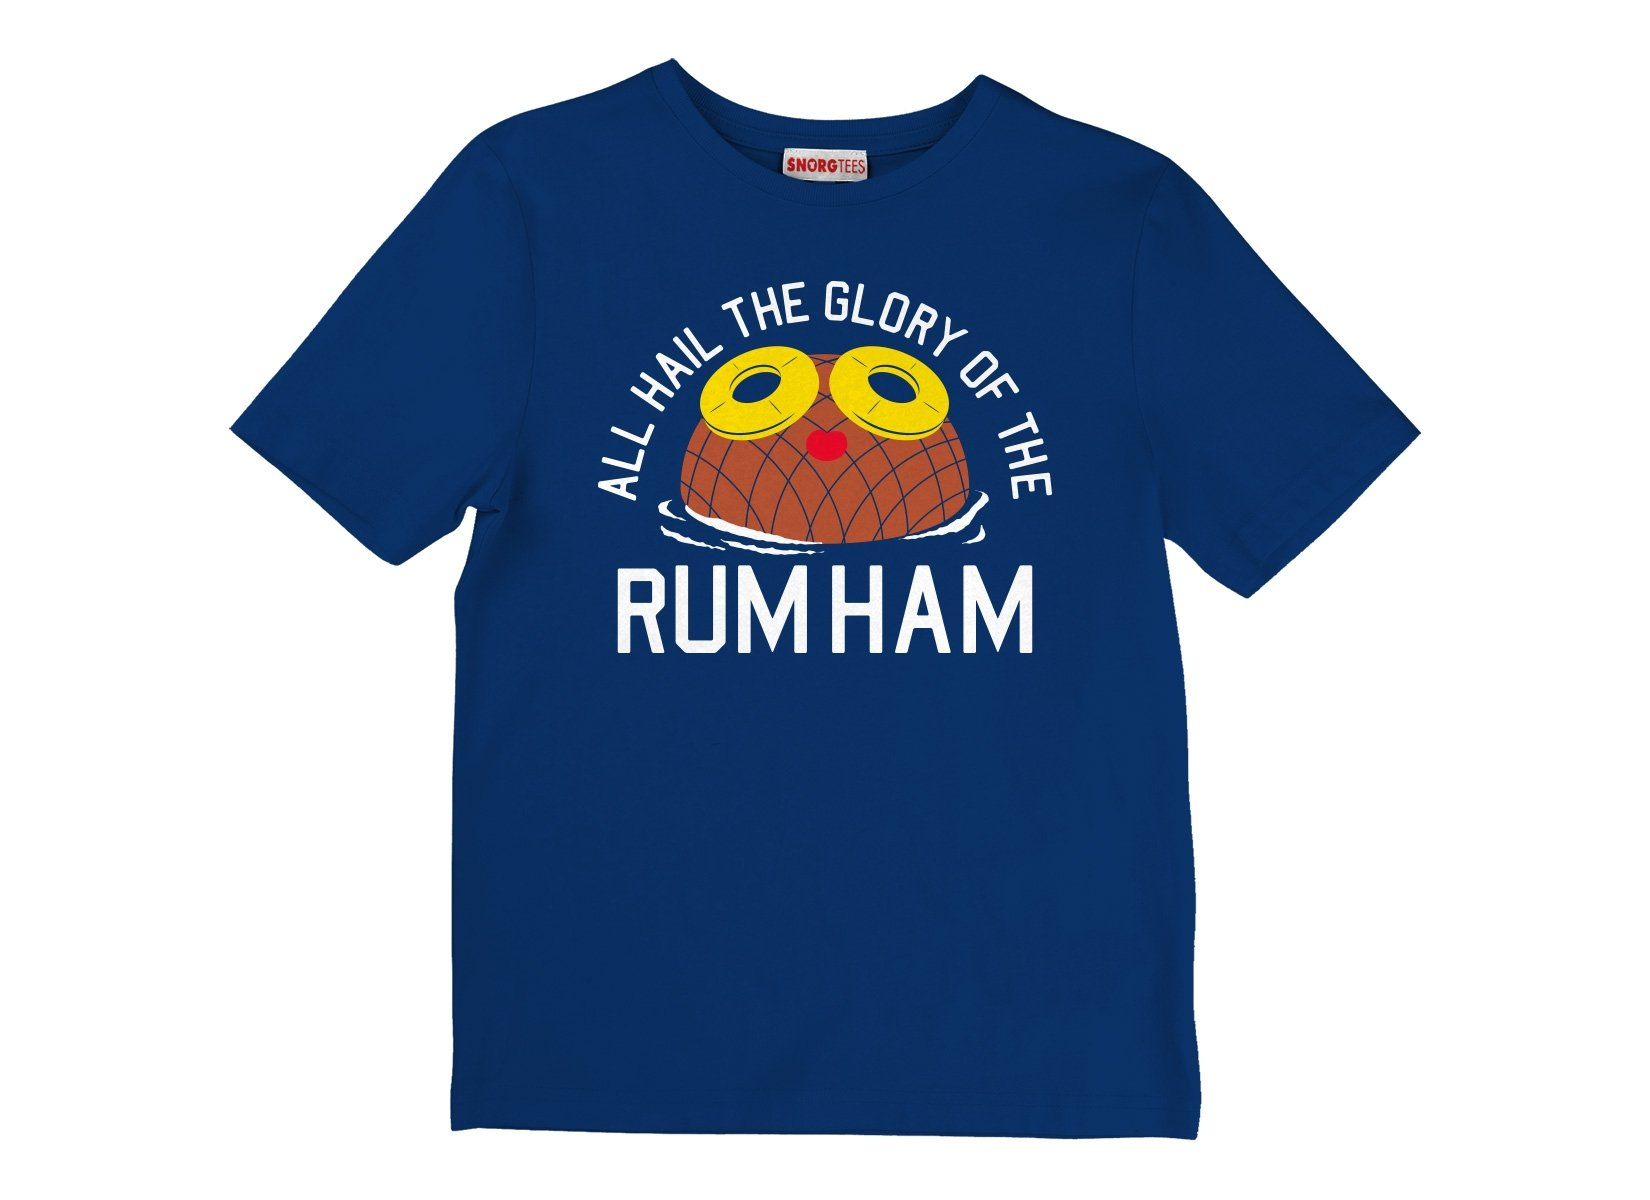 Rum Ham on Kids T-Shirt